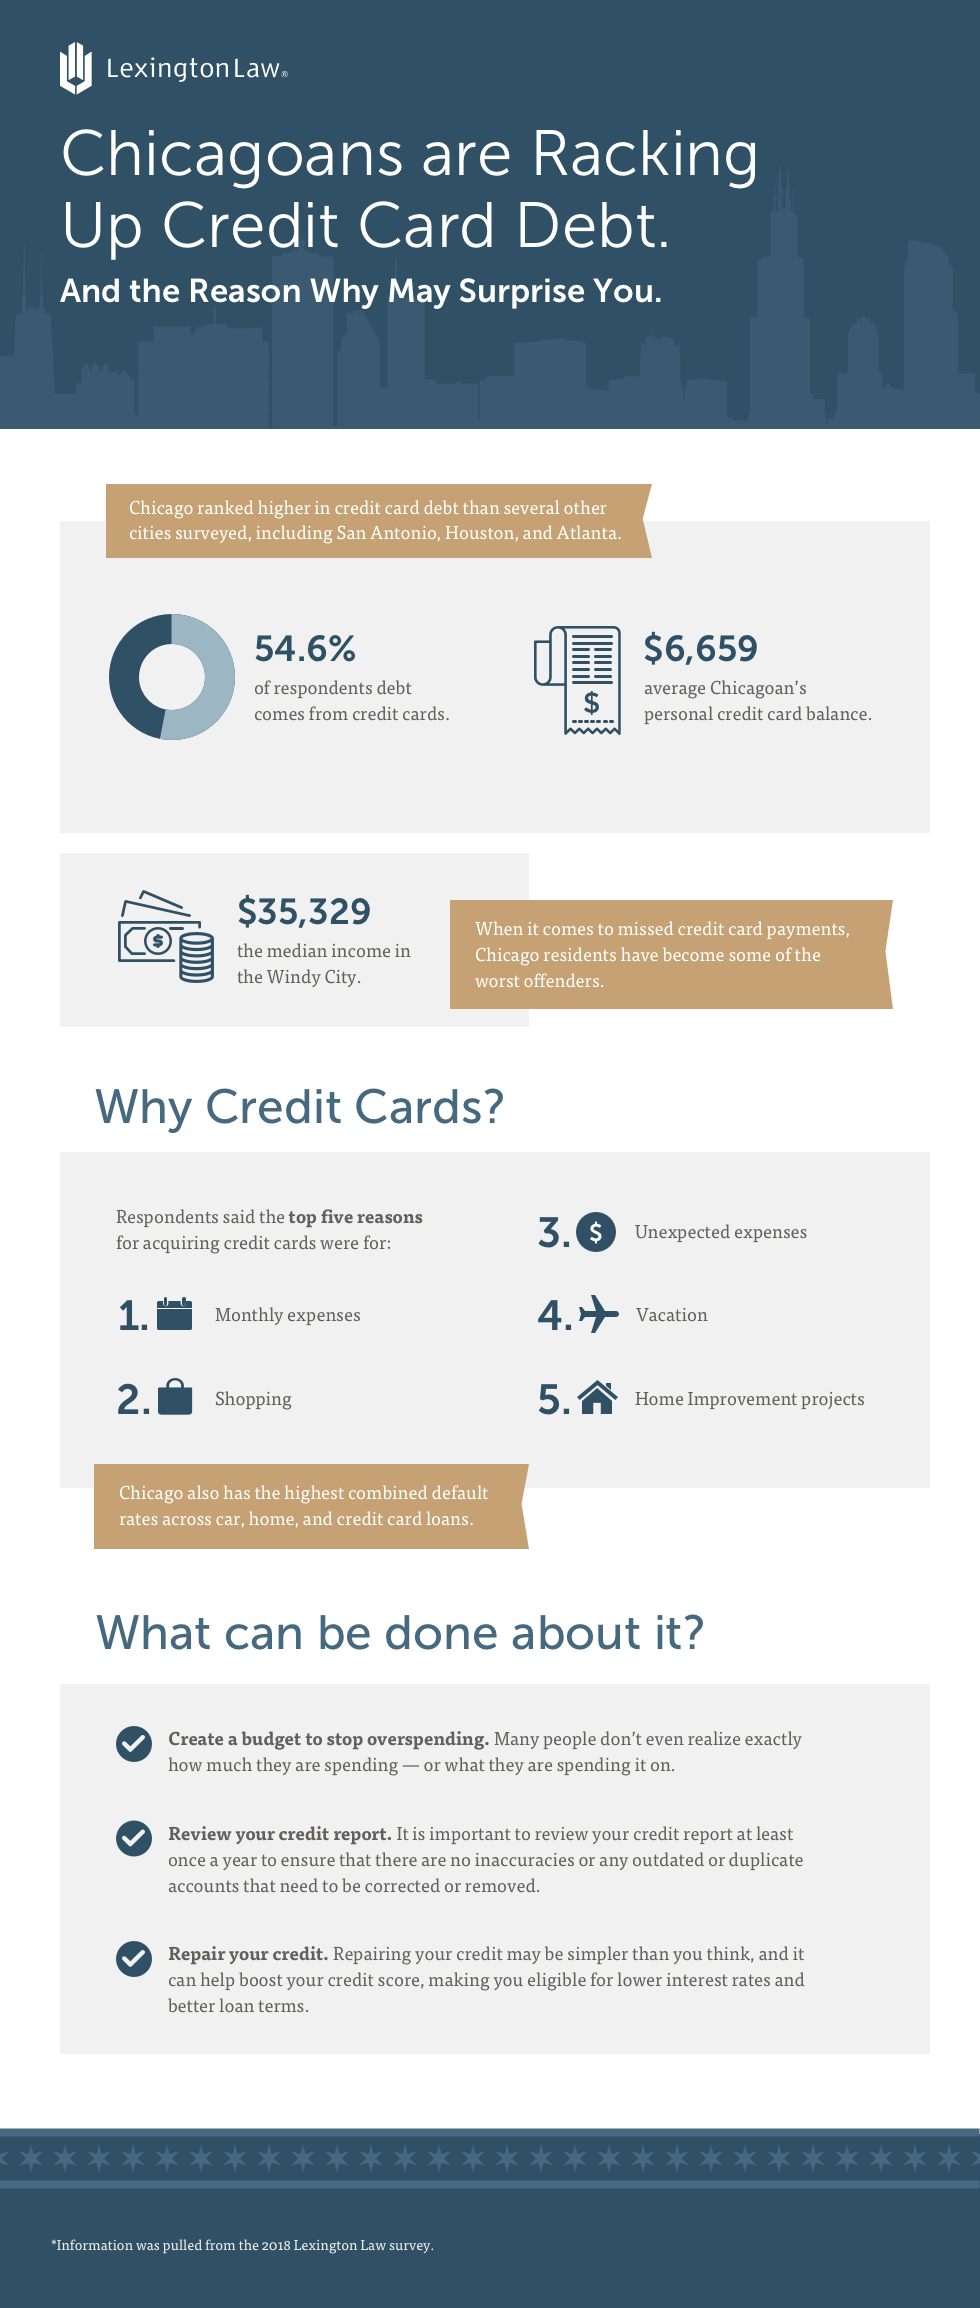 Credit Card Debt in Chicago